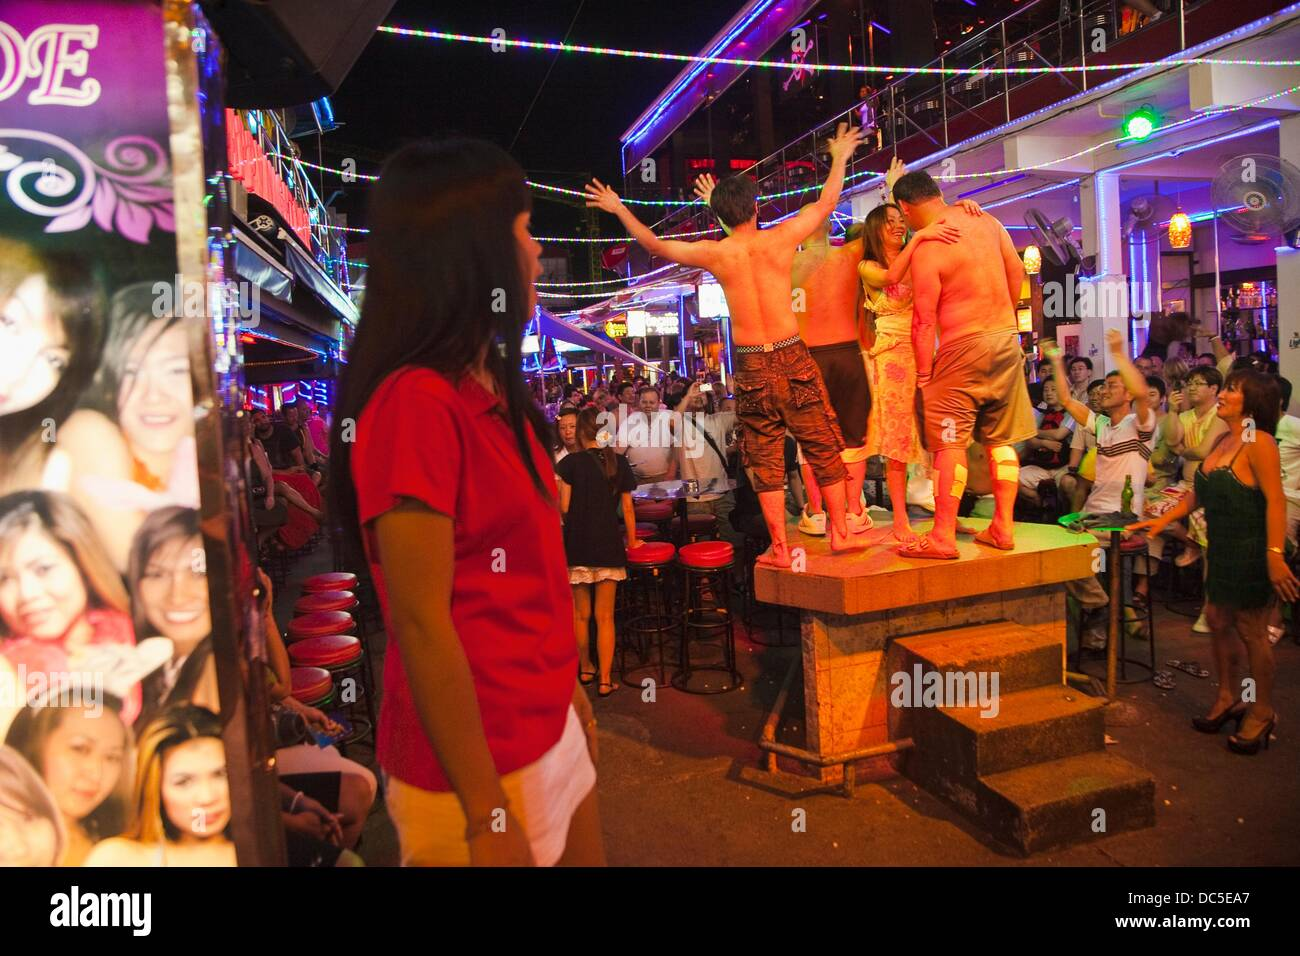 what are ladyboys called in thailand